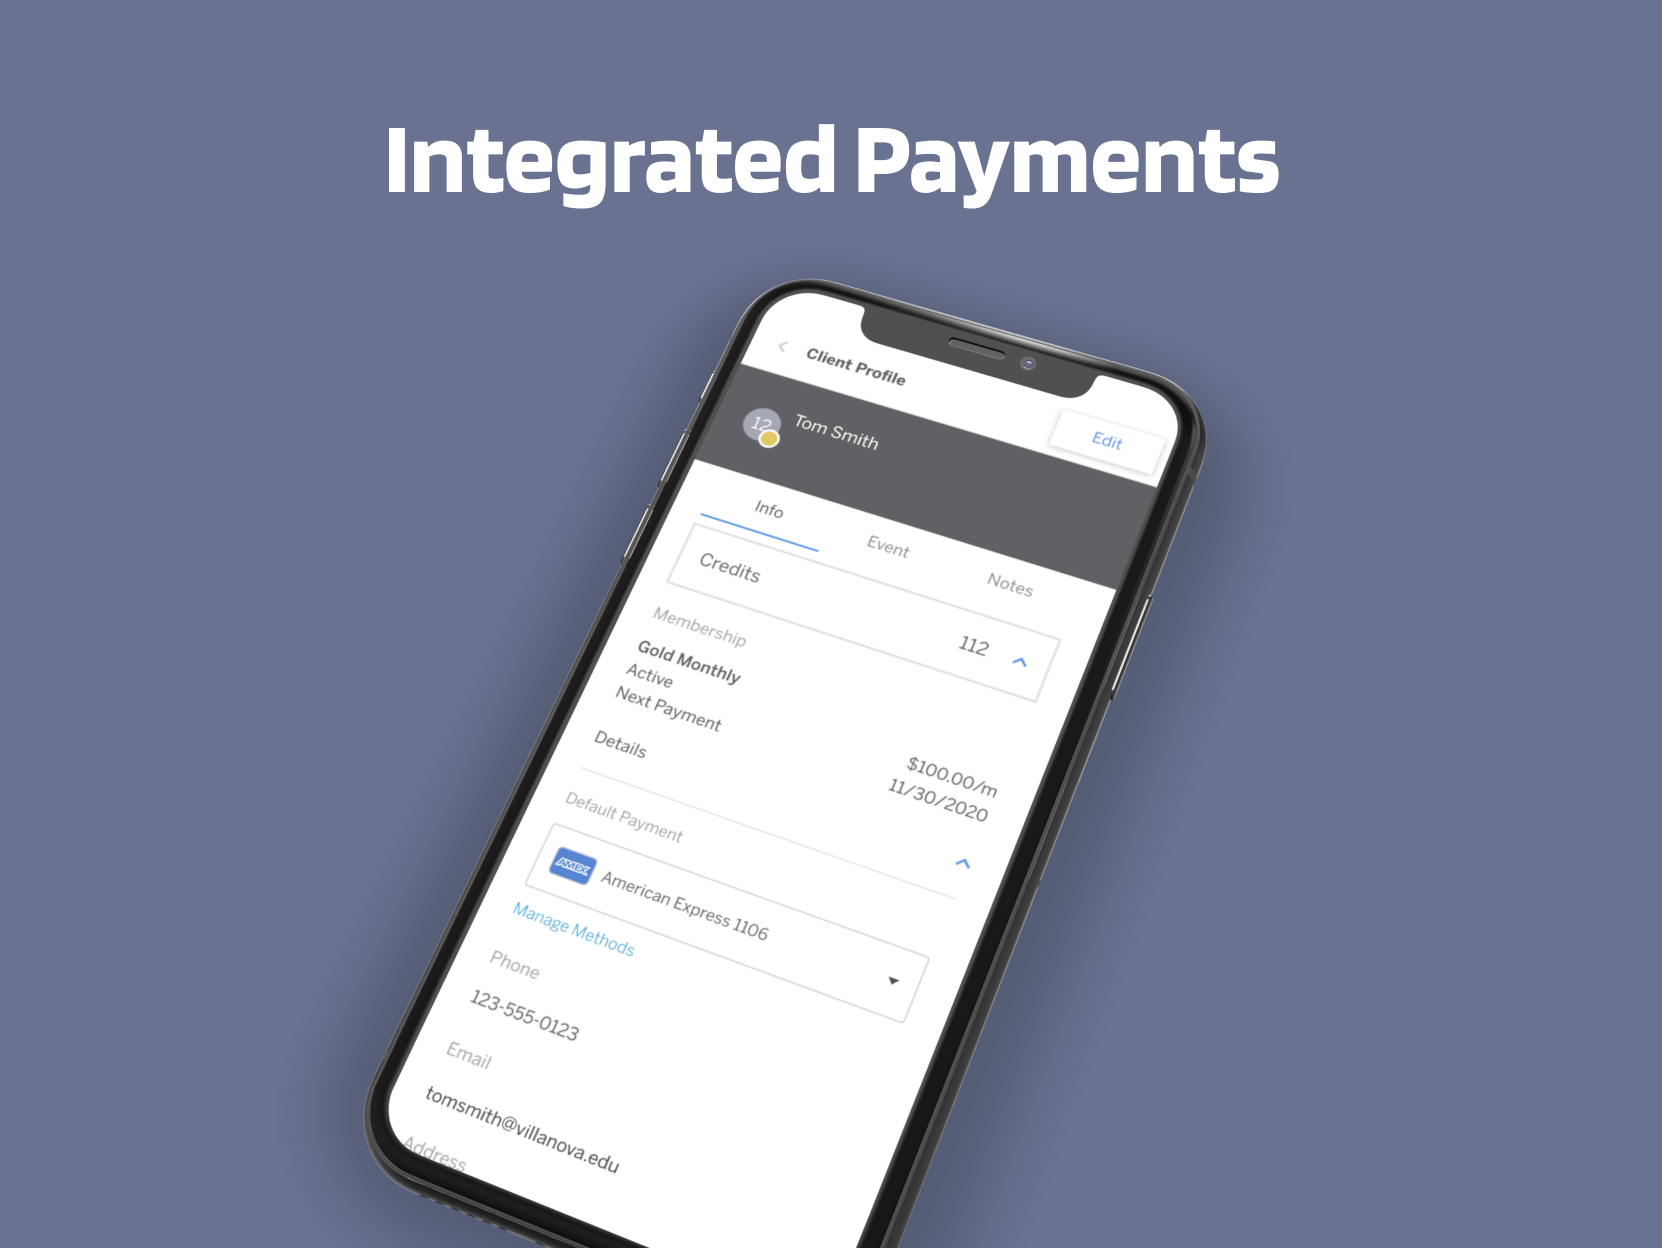 Upper Hand Software - Integrated software & payments platform eliminates need to aggregate data from multiple costly sources. Take quicker action on outstanding balances with integrated payment tools.